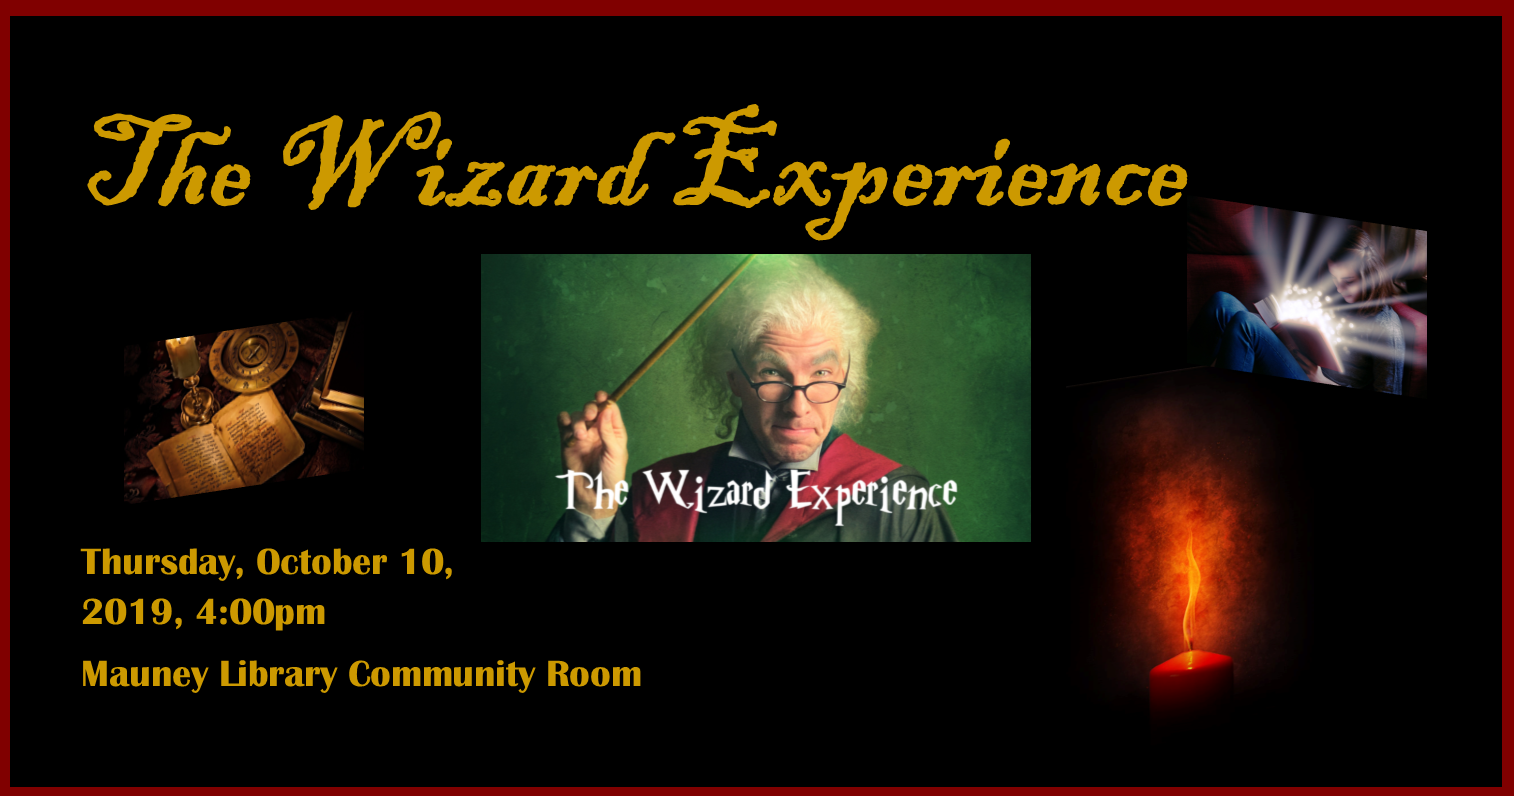 The Wizard Experience